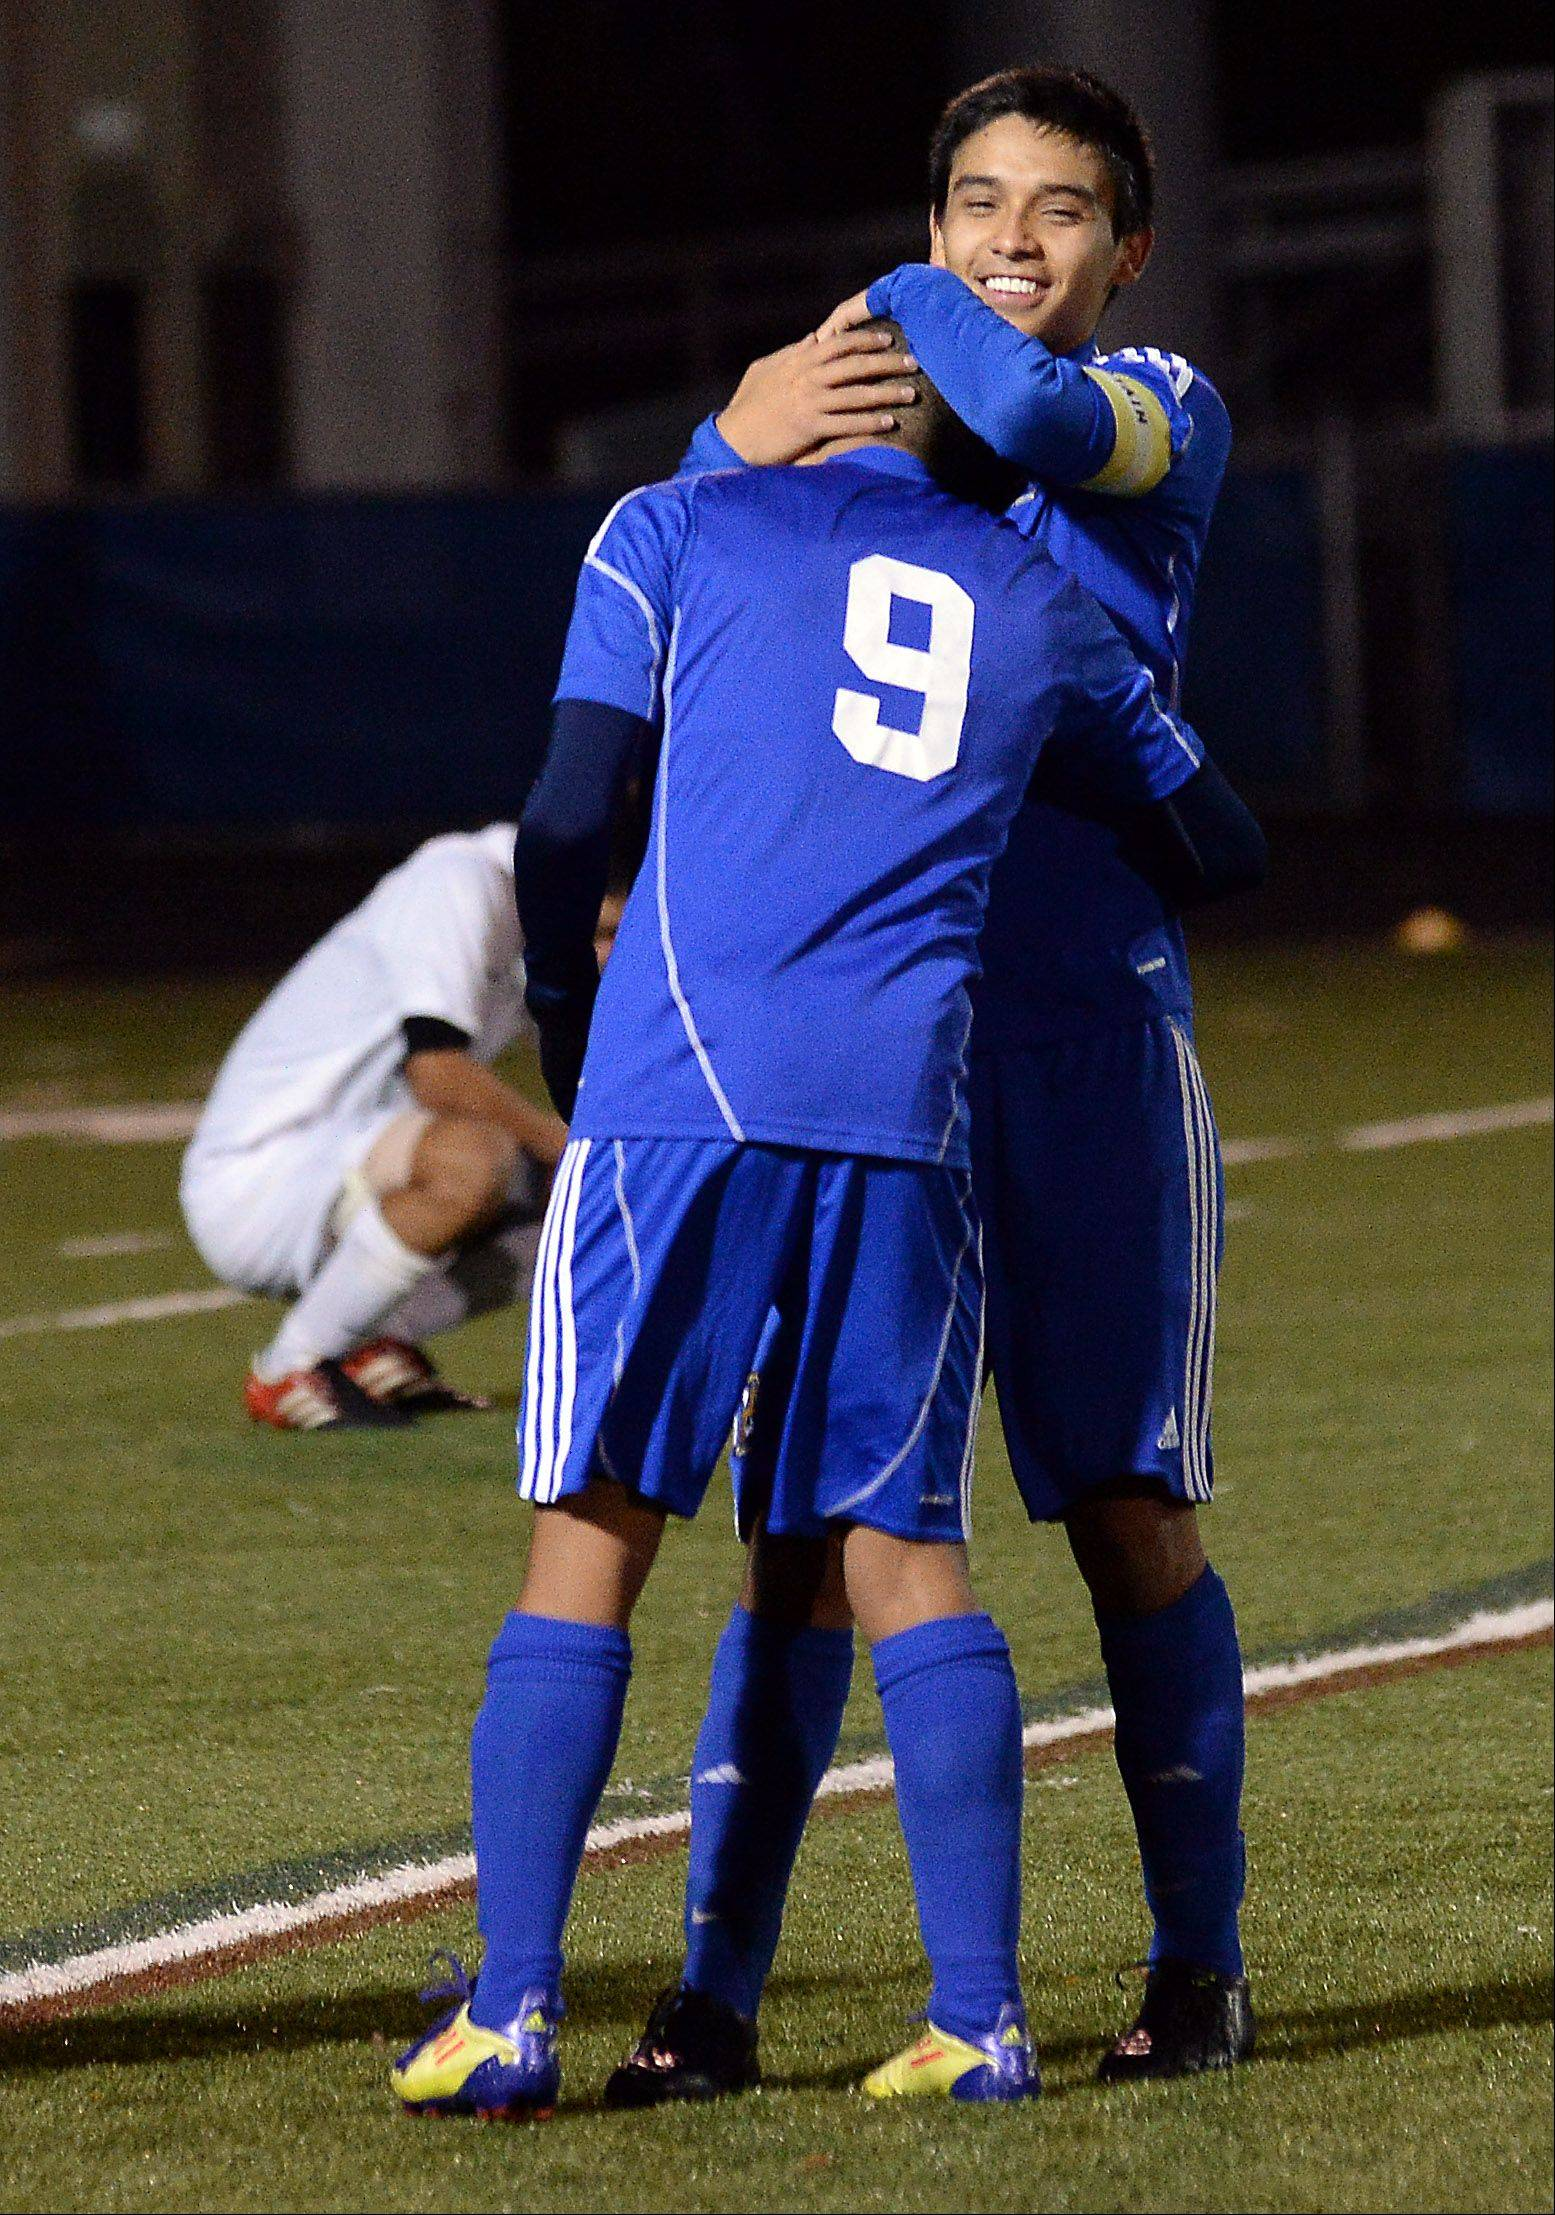 Wheeling's Jose Garcia and Frank Estrada celebrate their 3-0 victory over Lake Park in the Class 3A boys soccer state semifinals at Hoffman Estates.